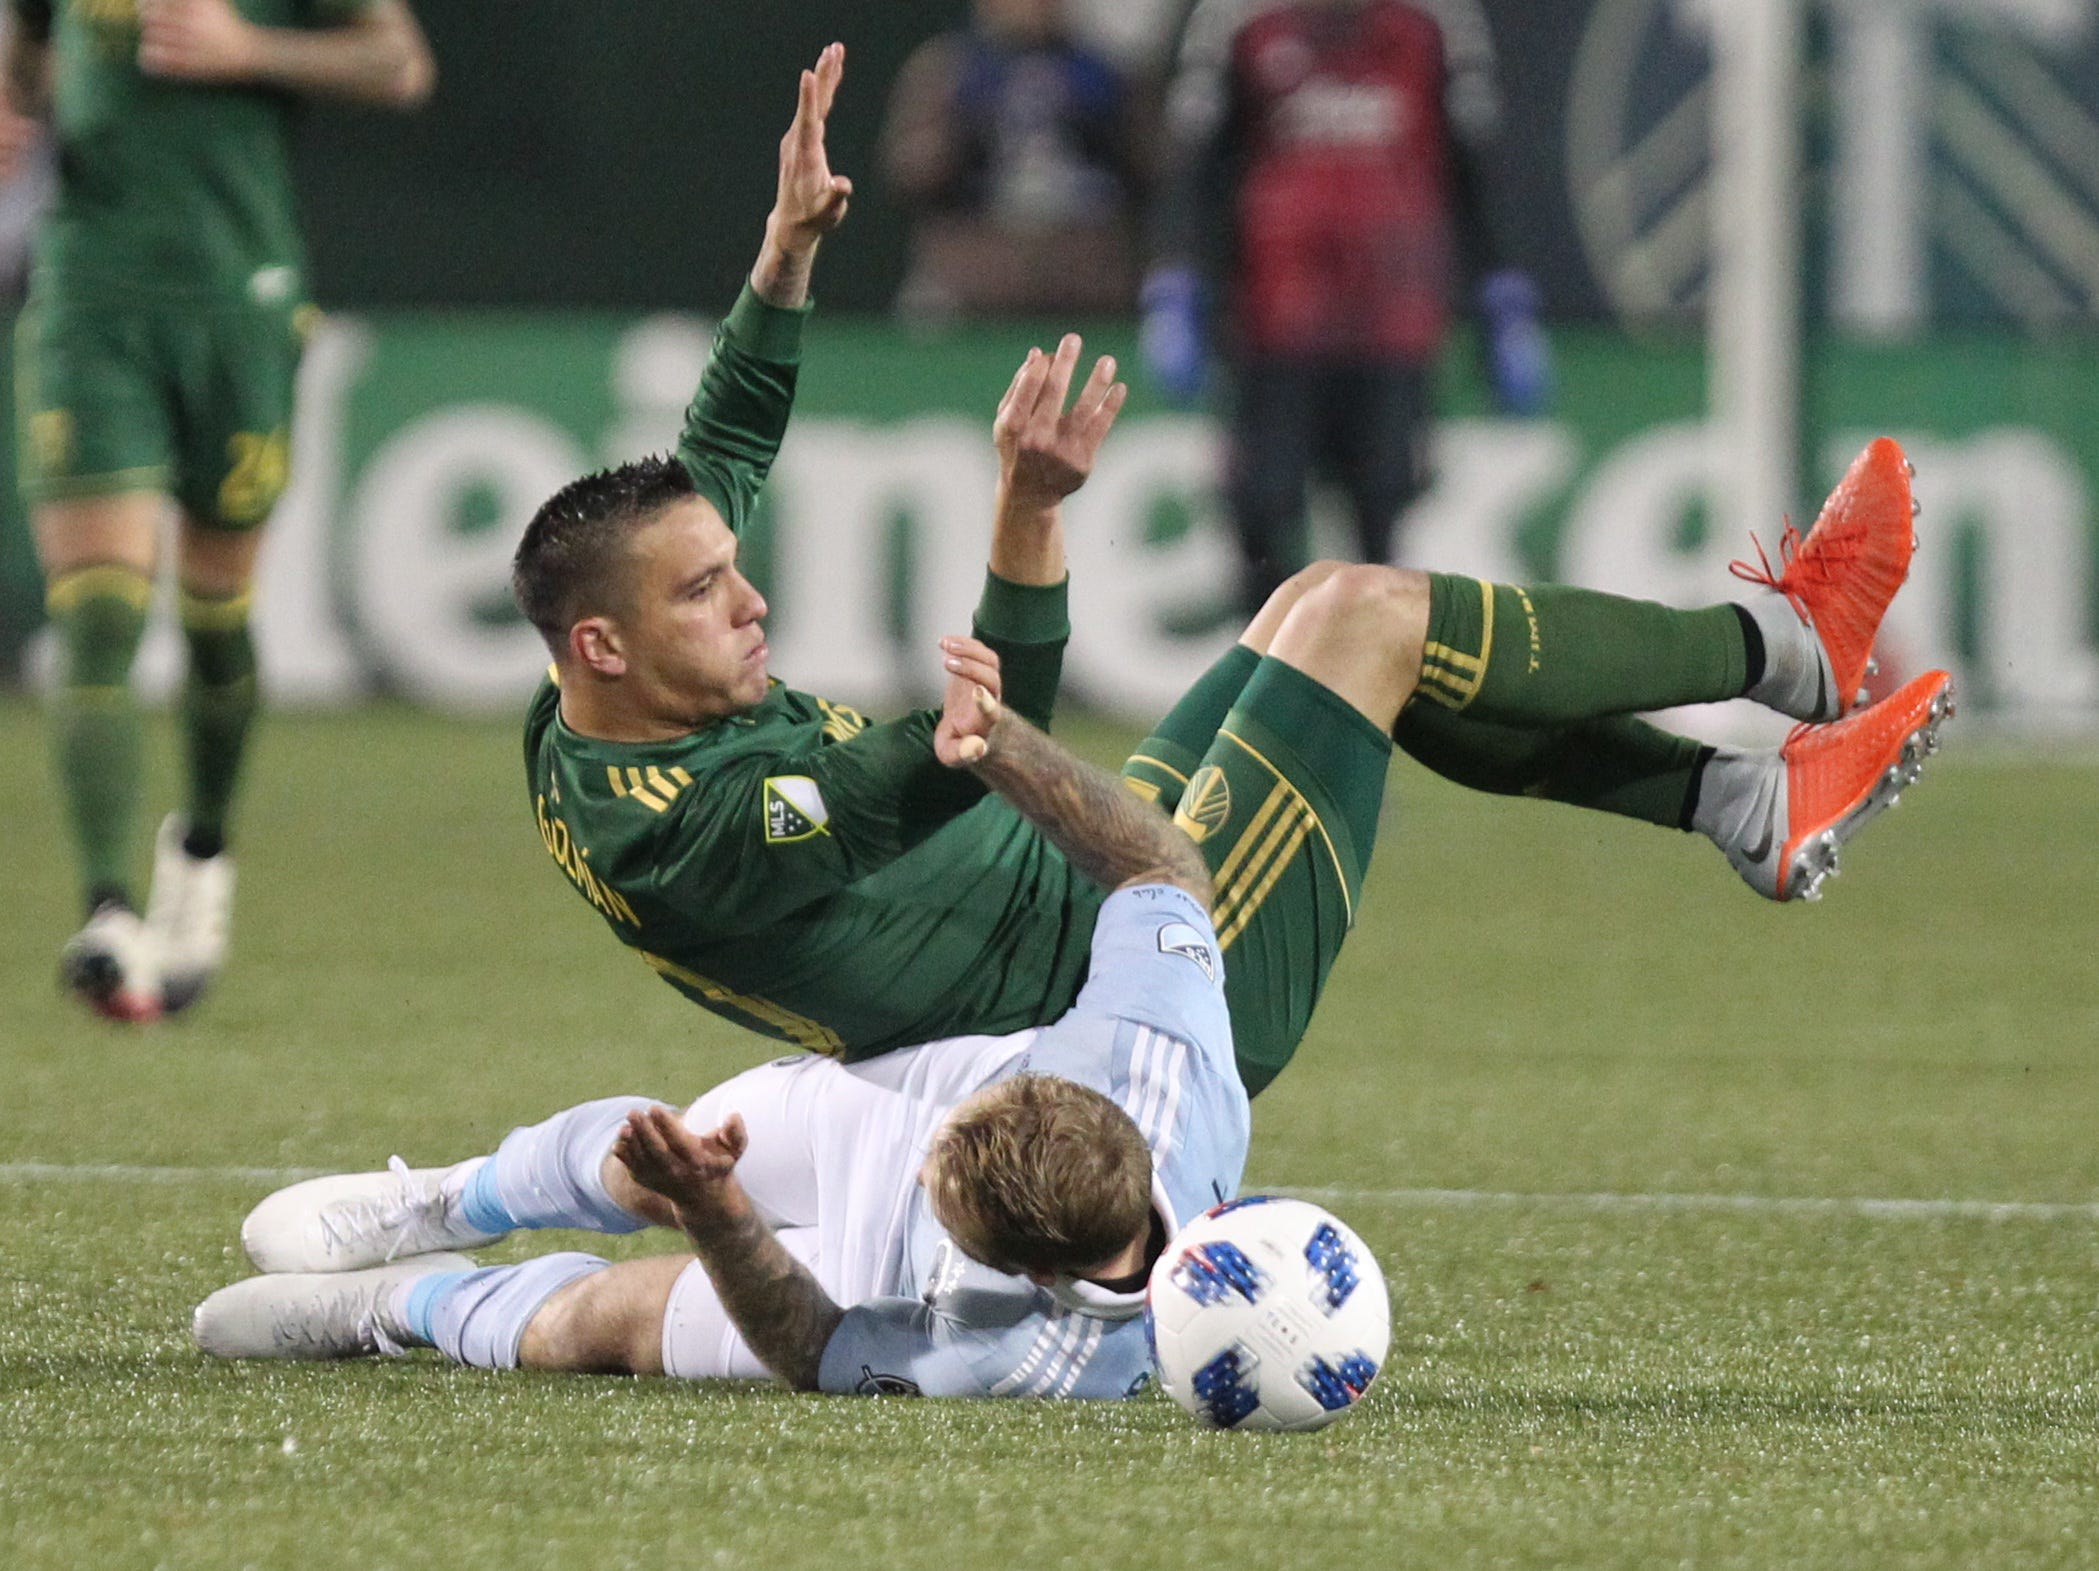 Nov 25, 2018; Portland, OR, USA; Portland Timbers midfielder David Guzman (20) rolls over Sporting Kansas City forward Johnny Russell (7) battle for the ball in the second half of the first leg of the MLS Western Conference Championship at Providence Park. Mandatory Credit: Jaime Valdez-USA TODAY Sports